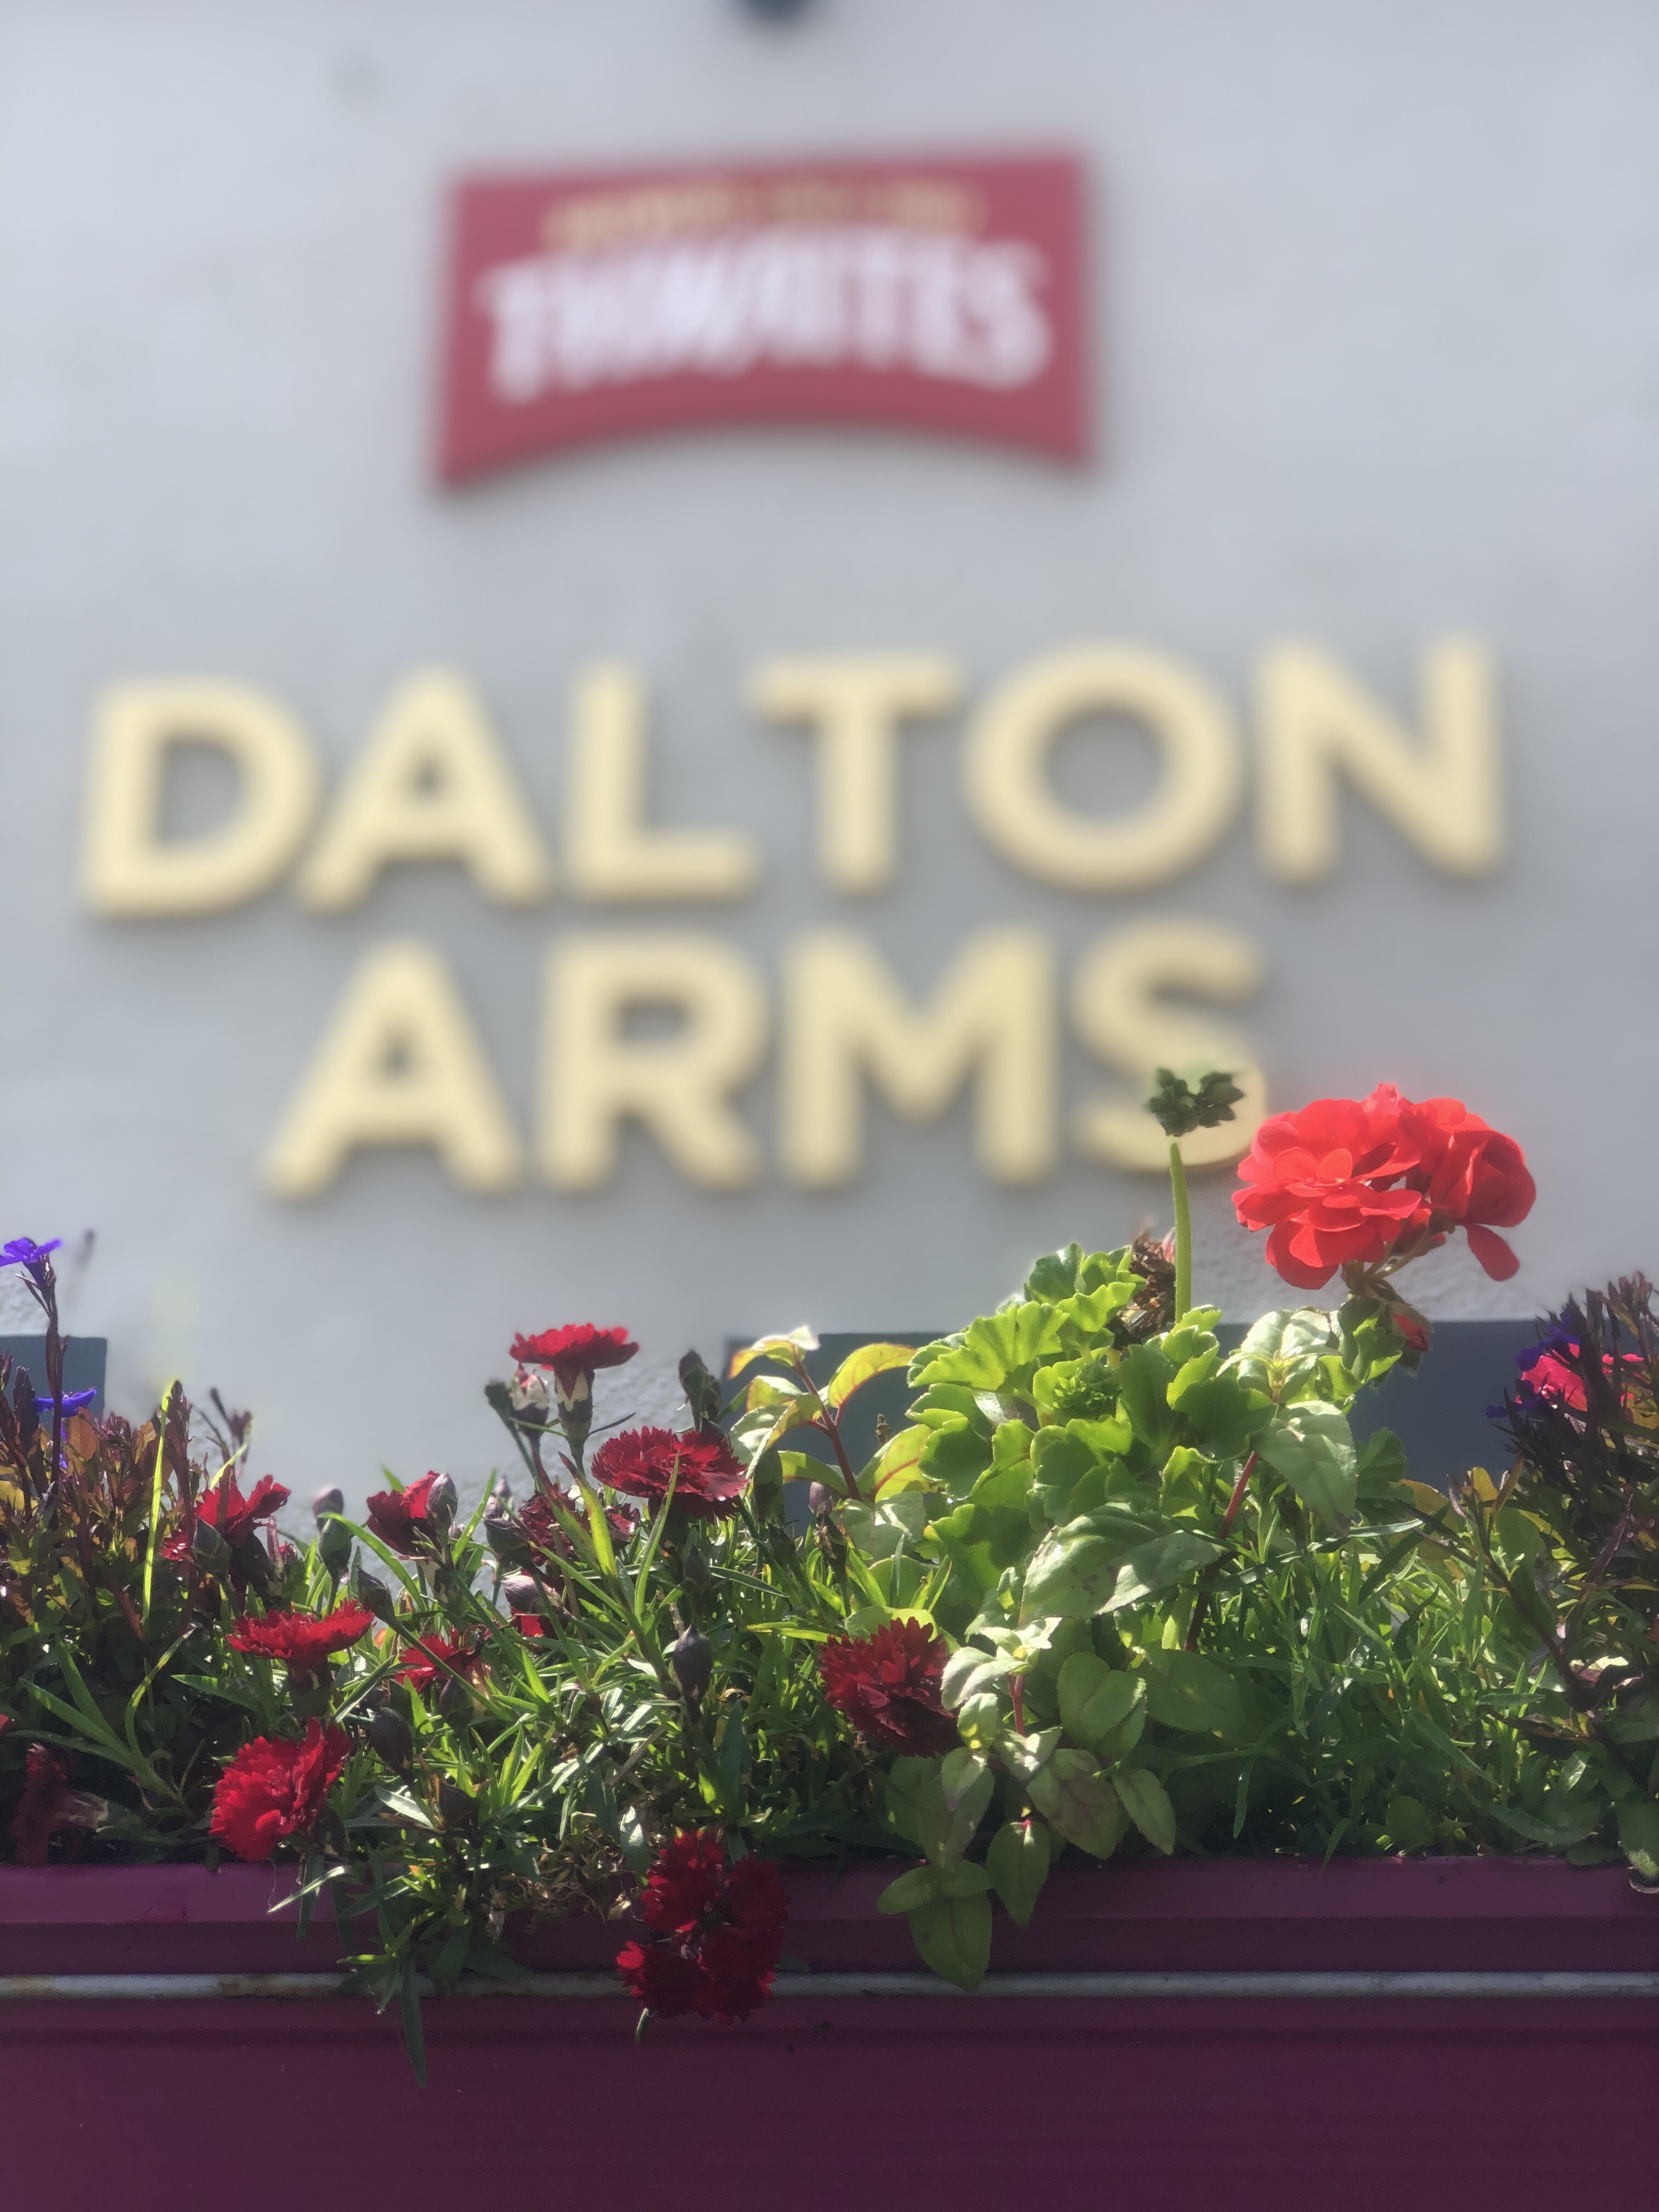 Dalton Arms in Bloom!